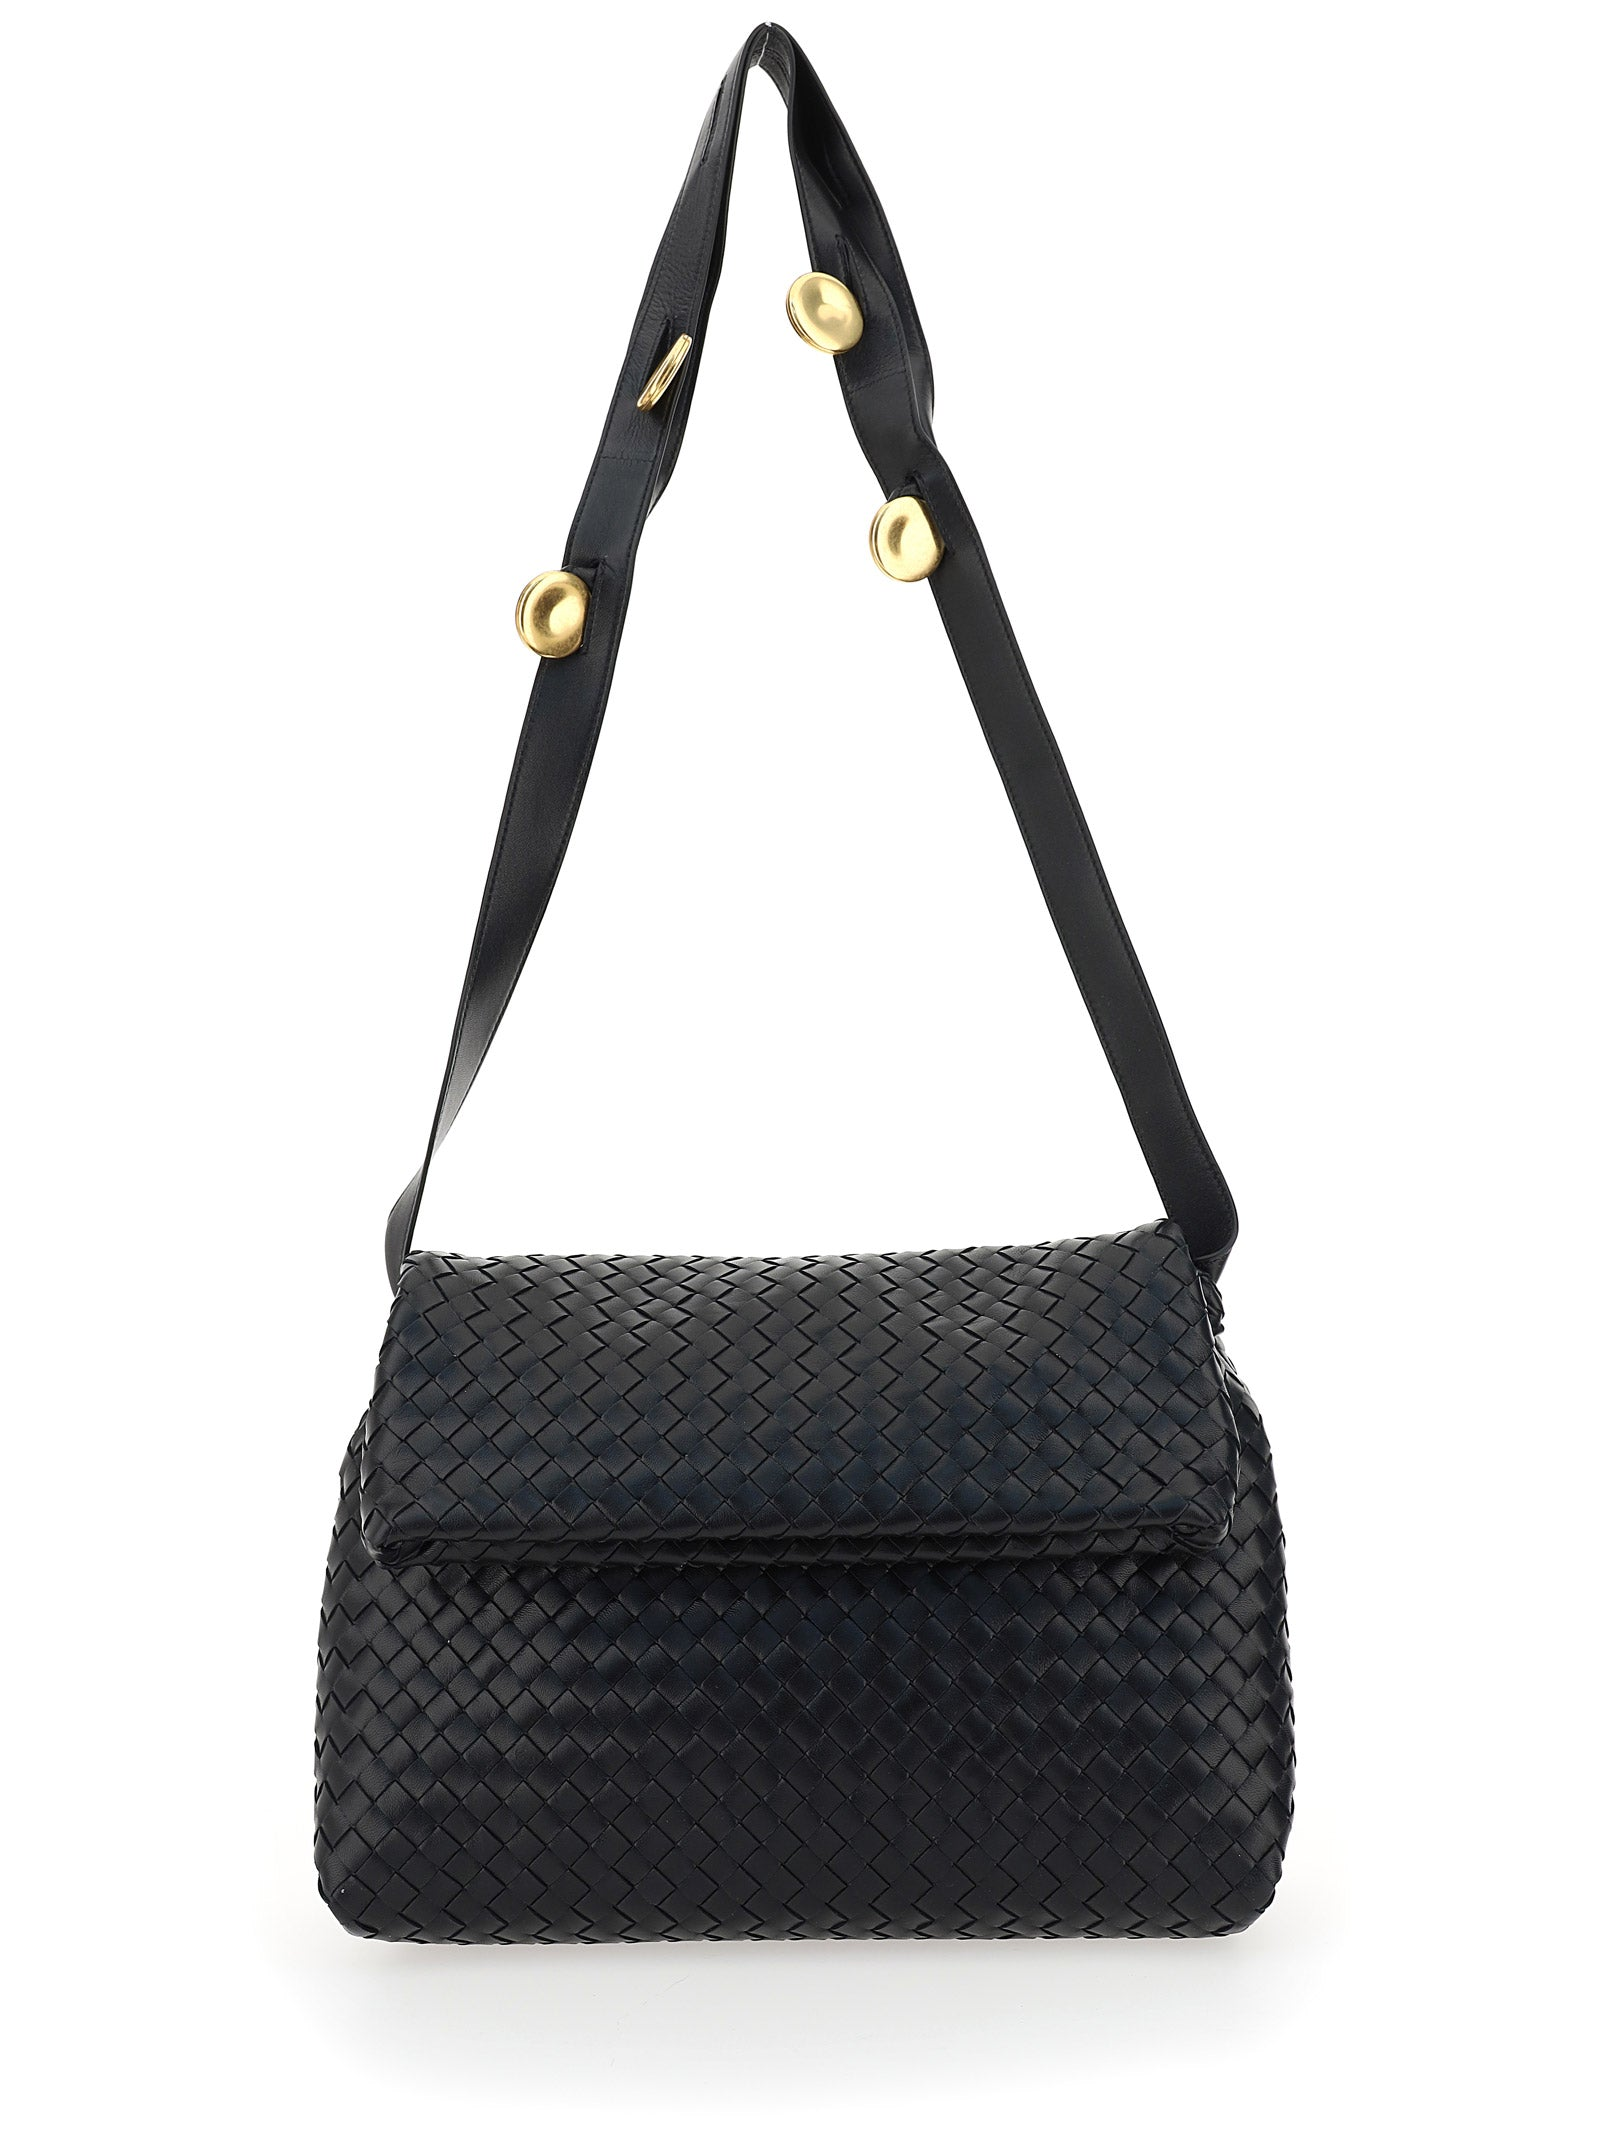 Bottega Veneta BOTTEGA VENETA BV FOLD SHOULDER BAG